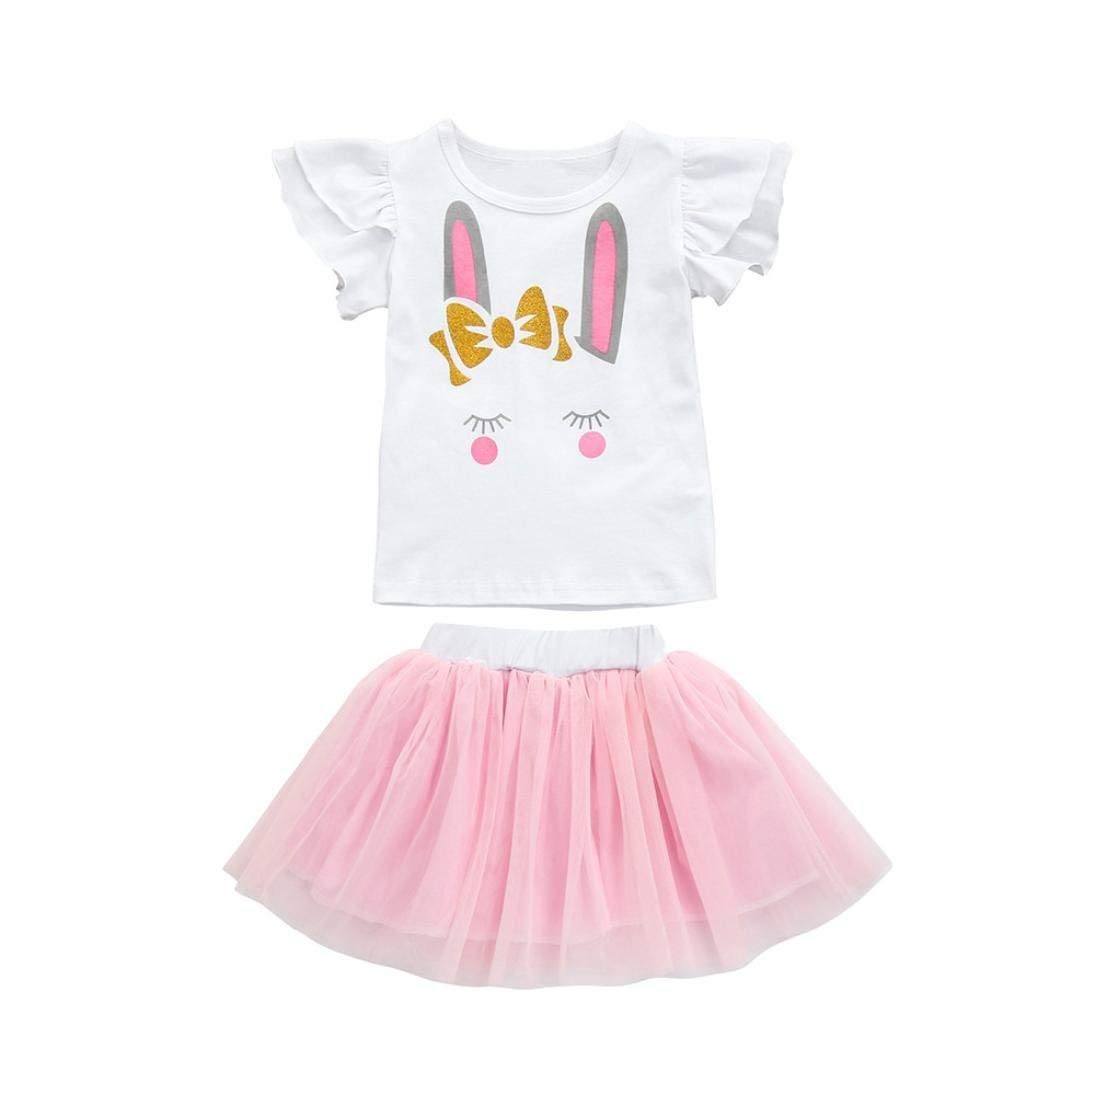 Toddler Baby Girls Clothes Cartoon RabbitTopsT-Shirt+PinkTutuTulle Skirt Outfits Toddler Baby Outdoor Clothes Set